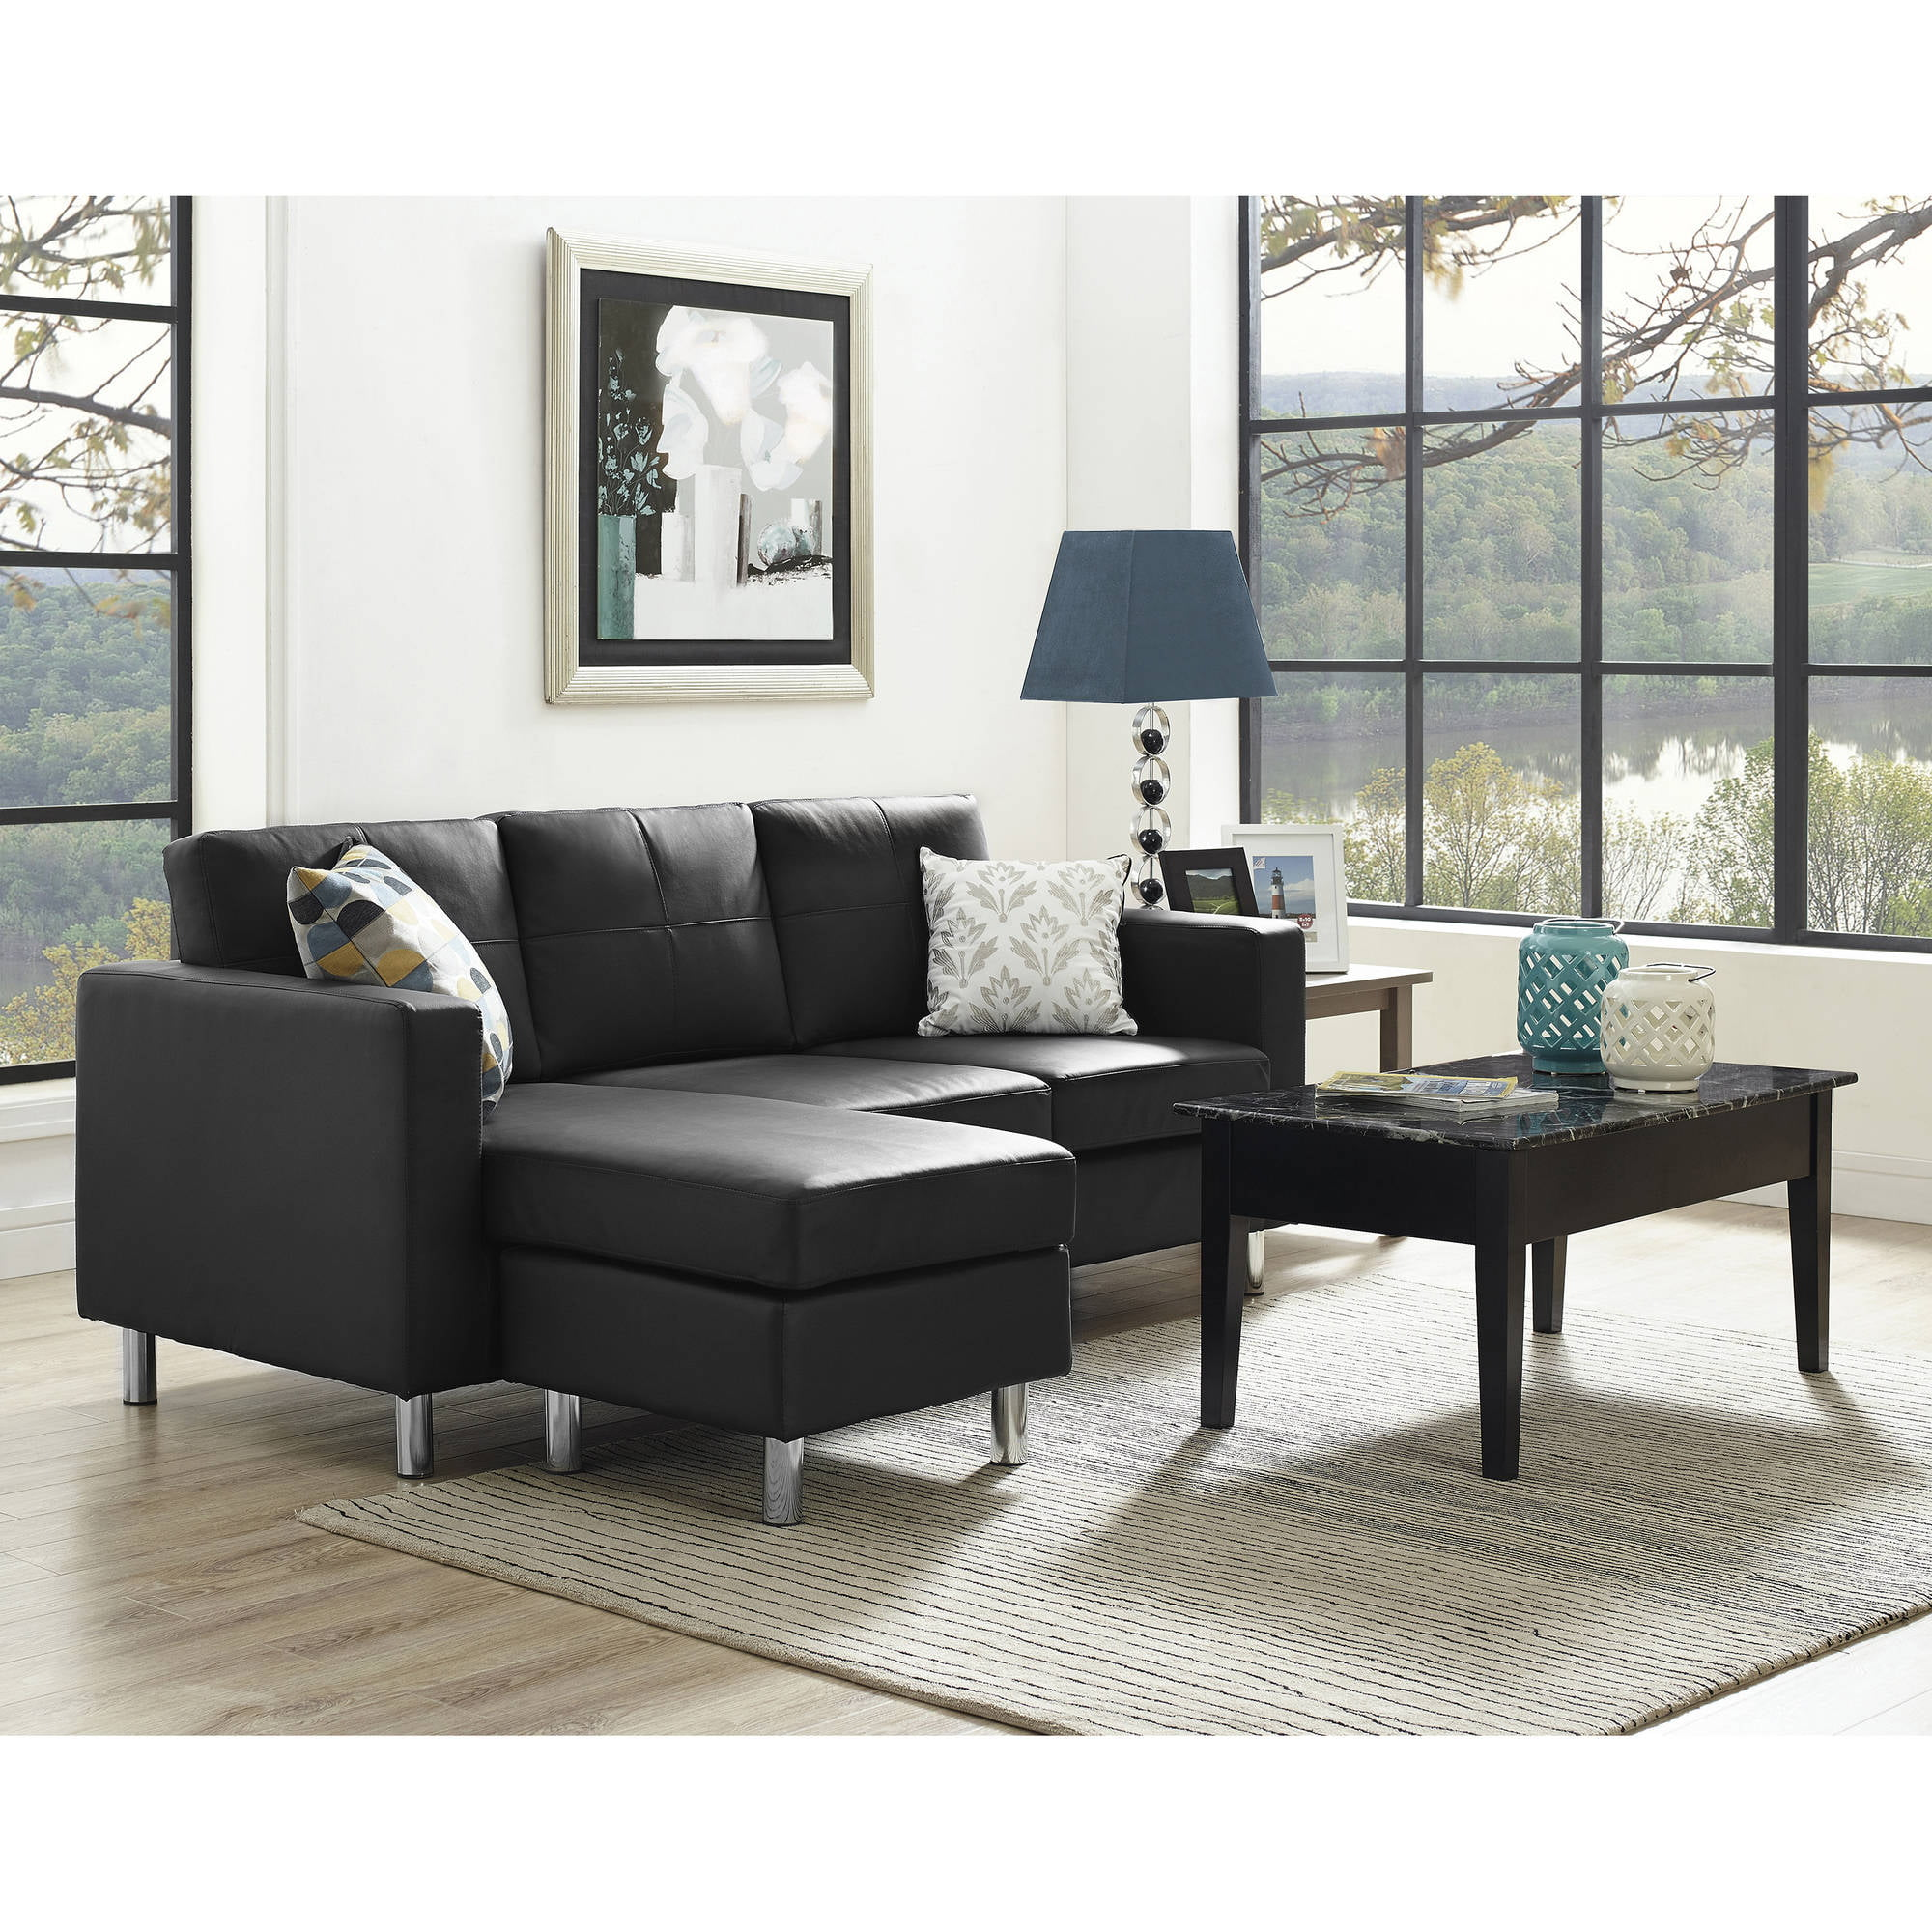 Dorel Living Small Es Configurable Sectional Sofa Multiple Colors